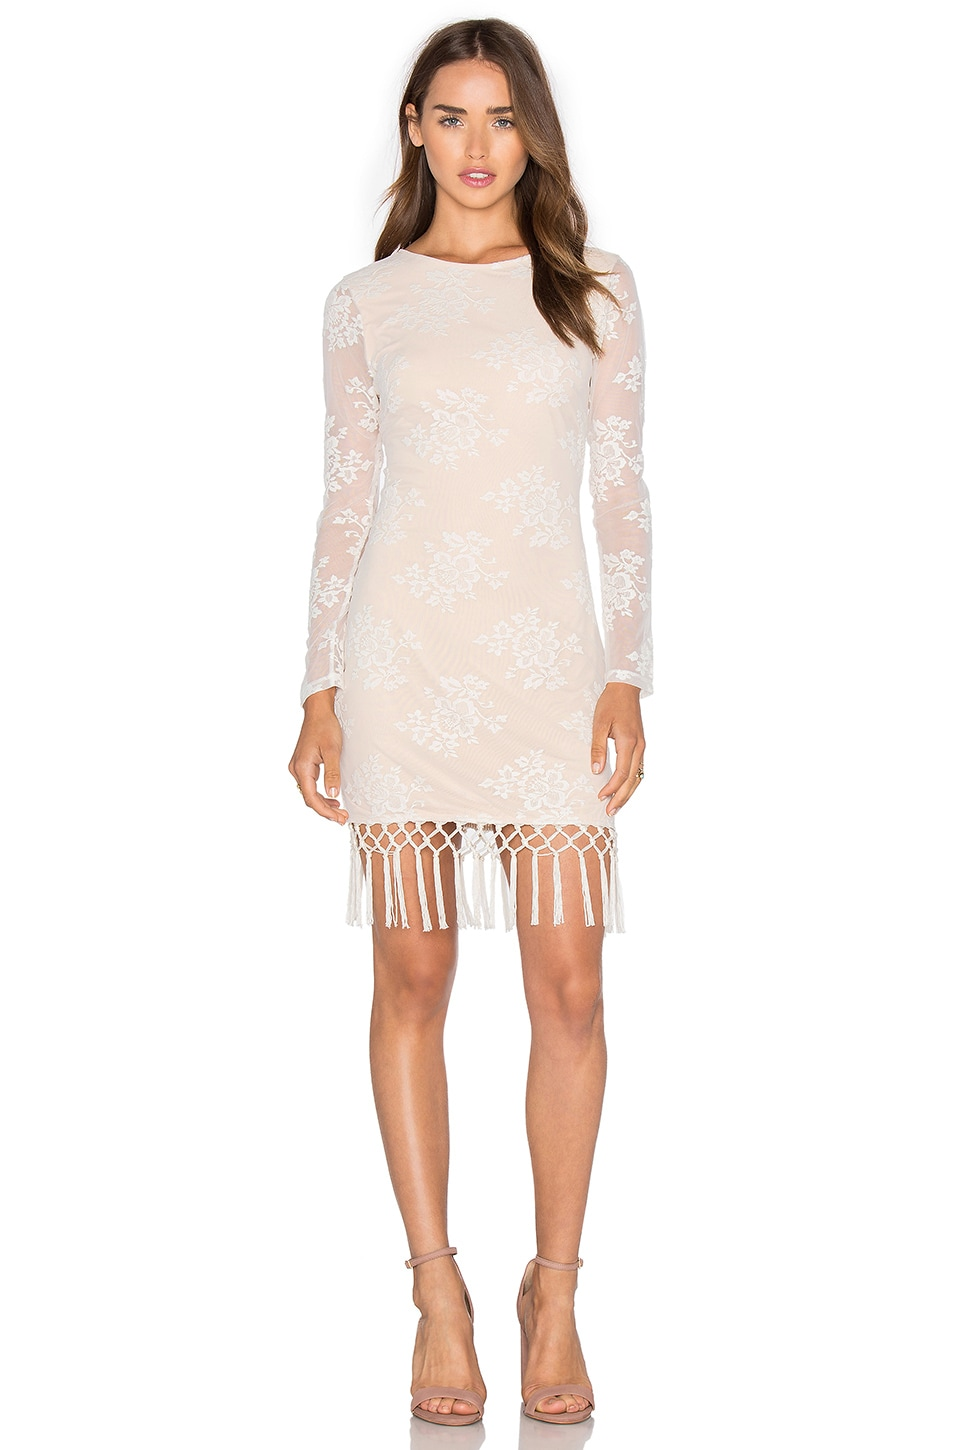 Filaree Fringe Dress by MAJORELLE